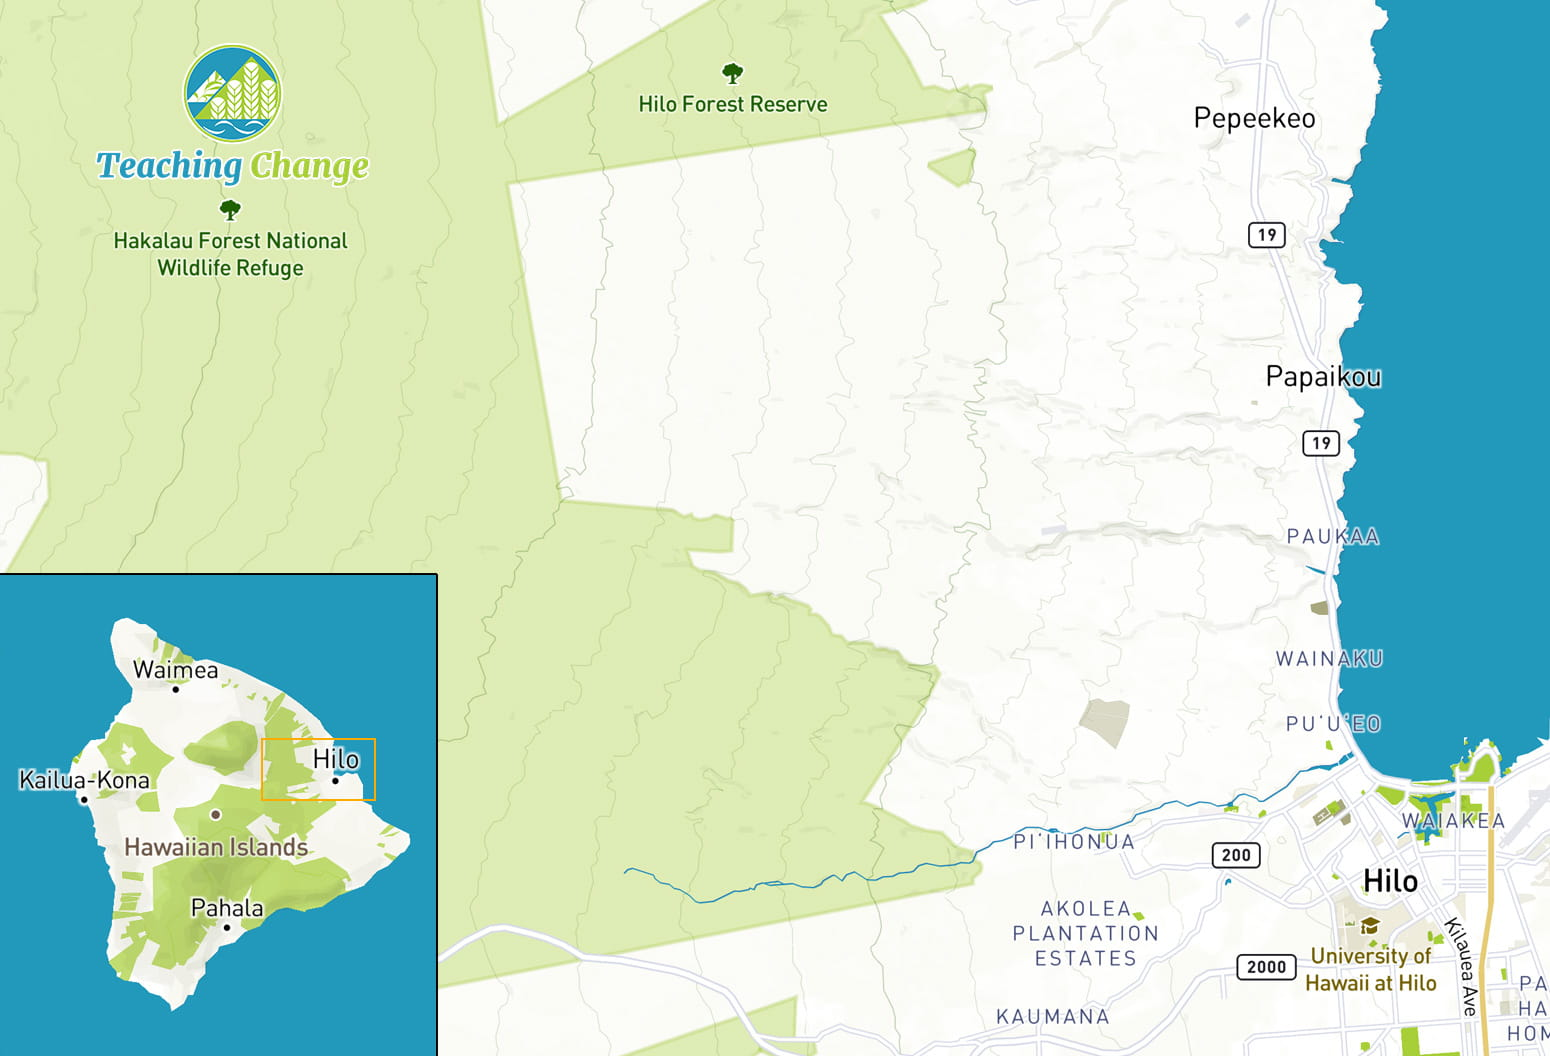 Map of Hakalau Forest National Wildlife Refuge in relation to Hilo and East Hawaii